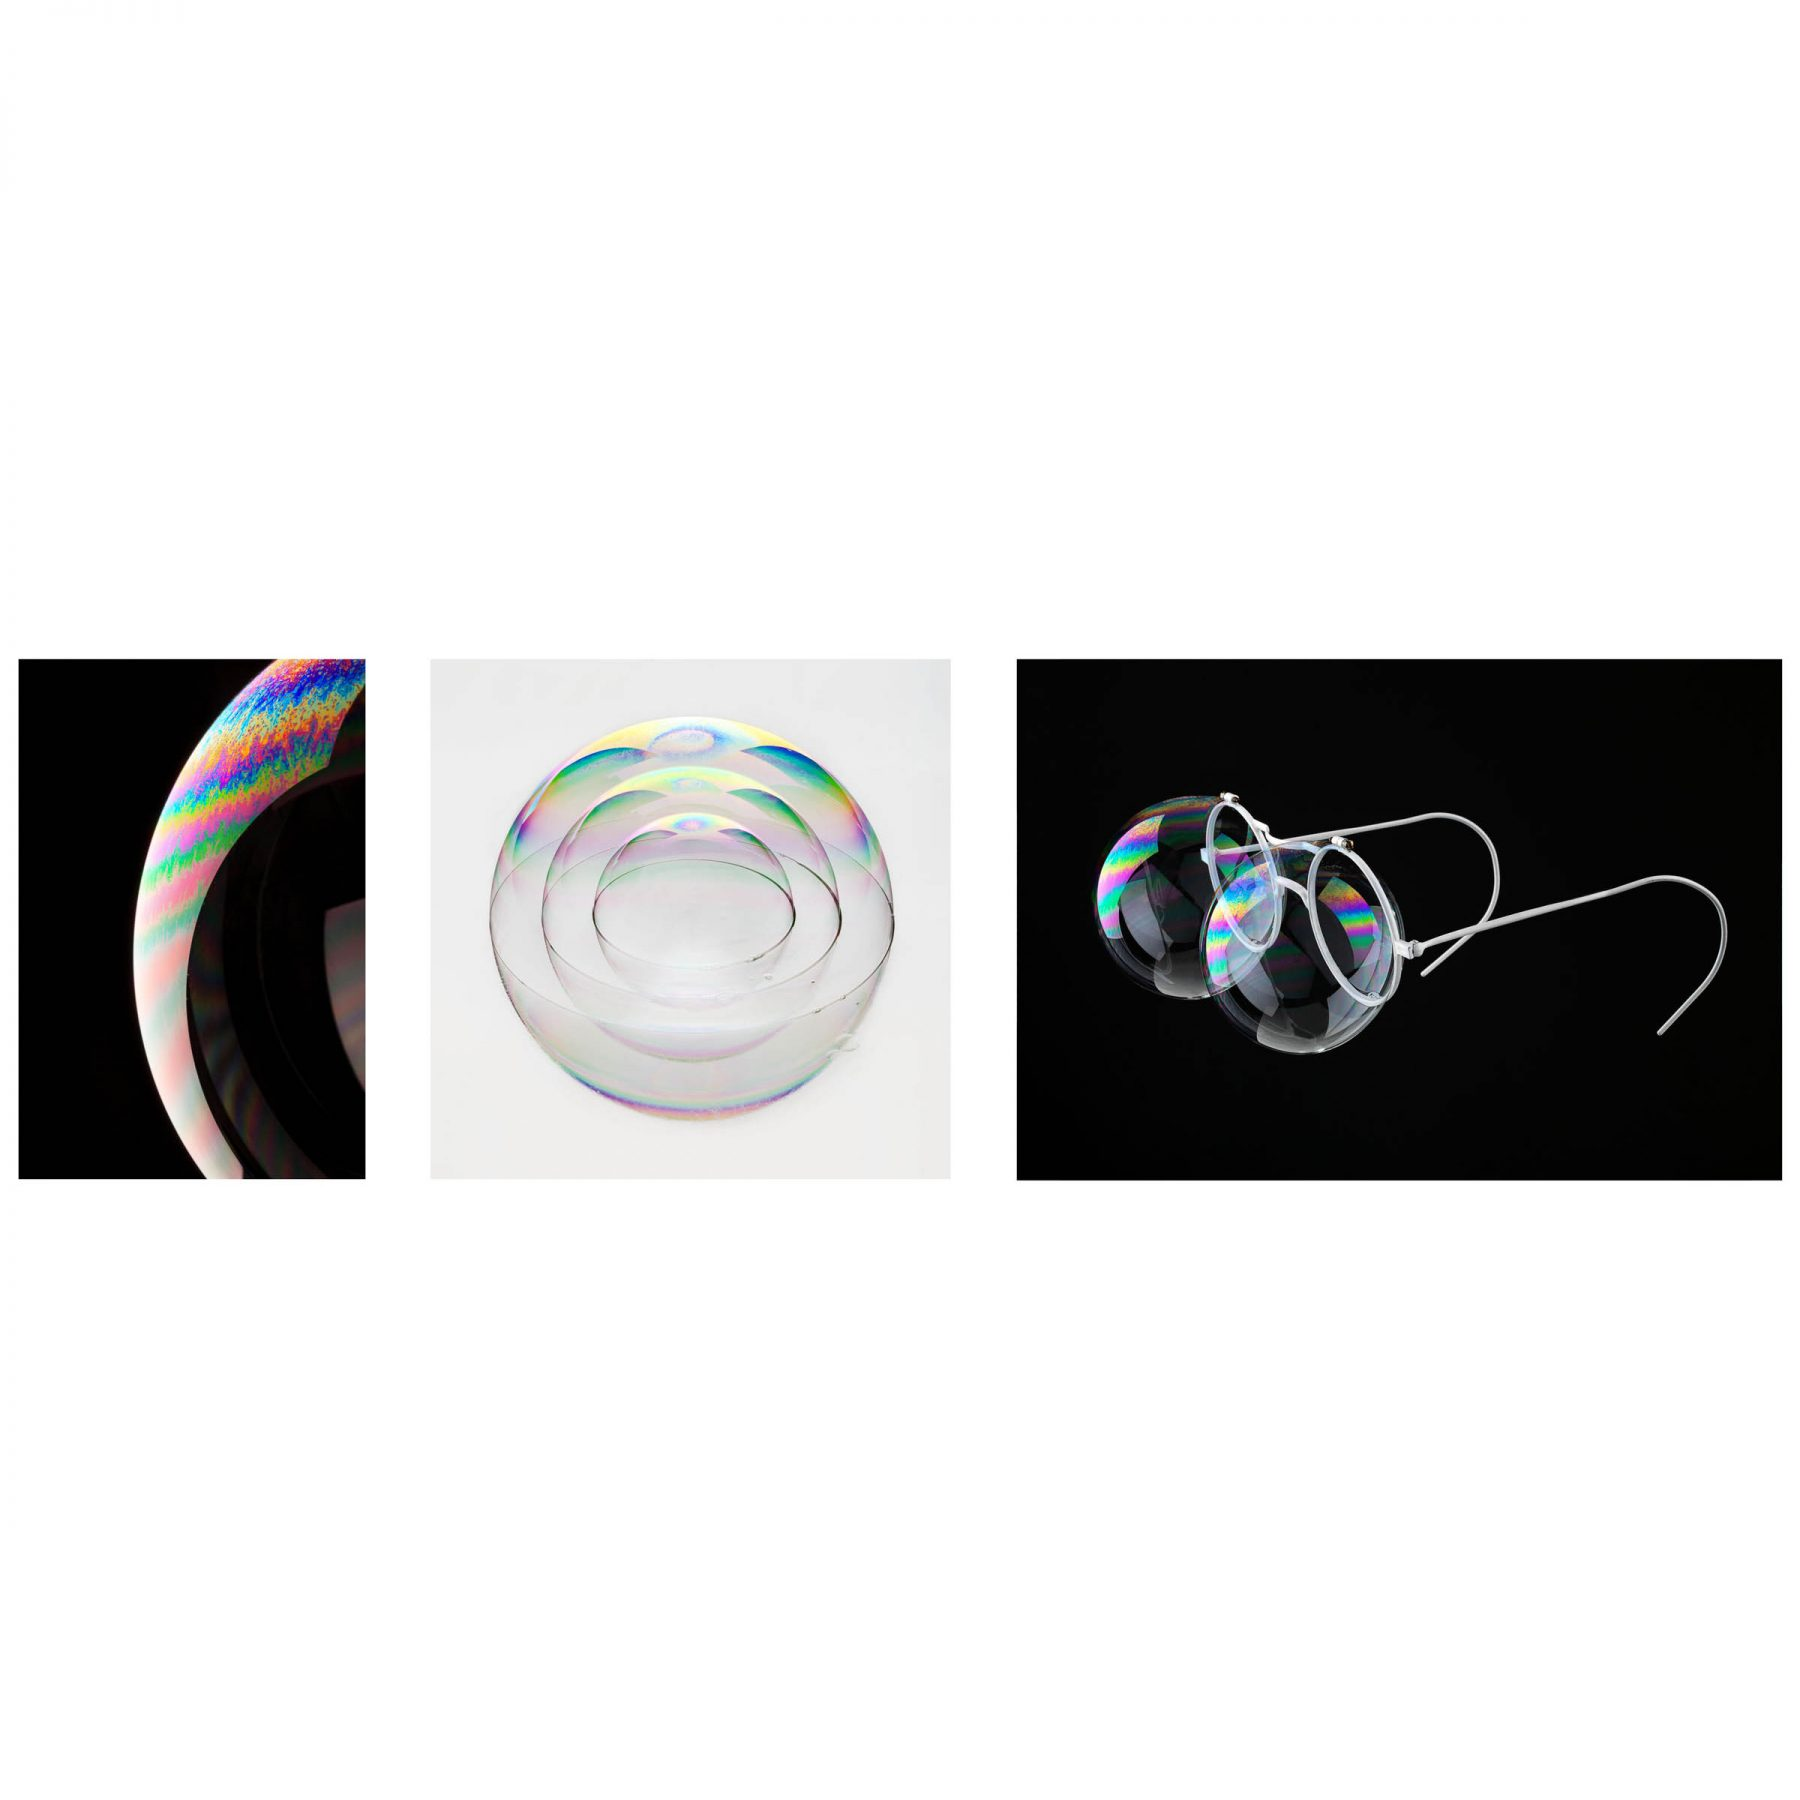 Looking-Bubble-Glasses